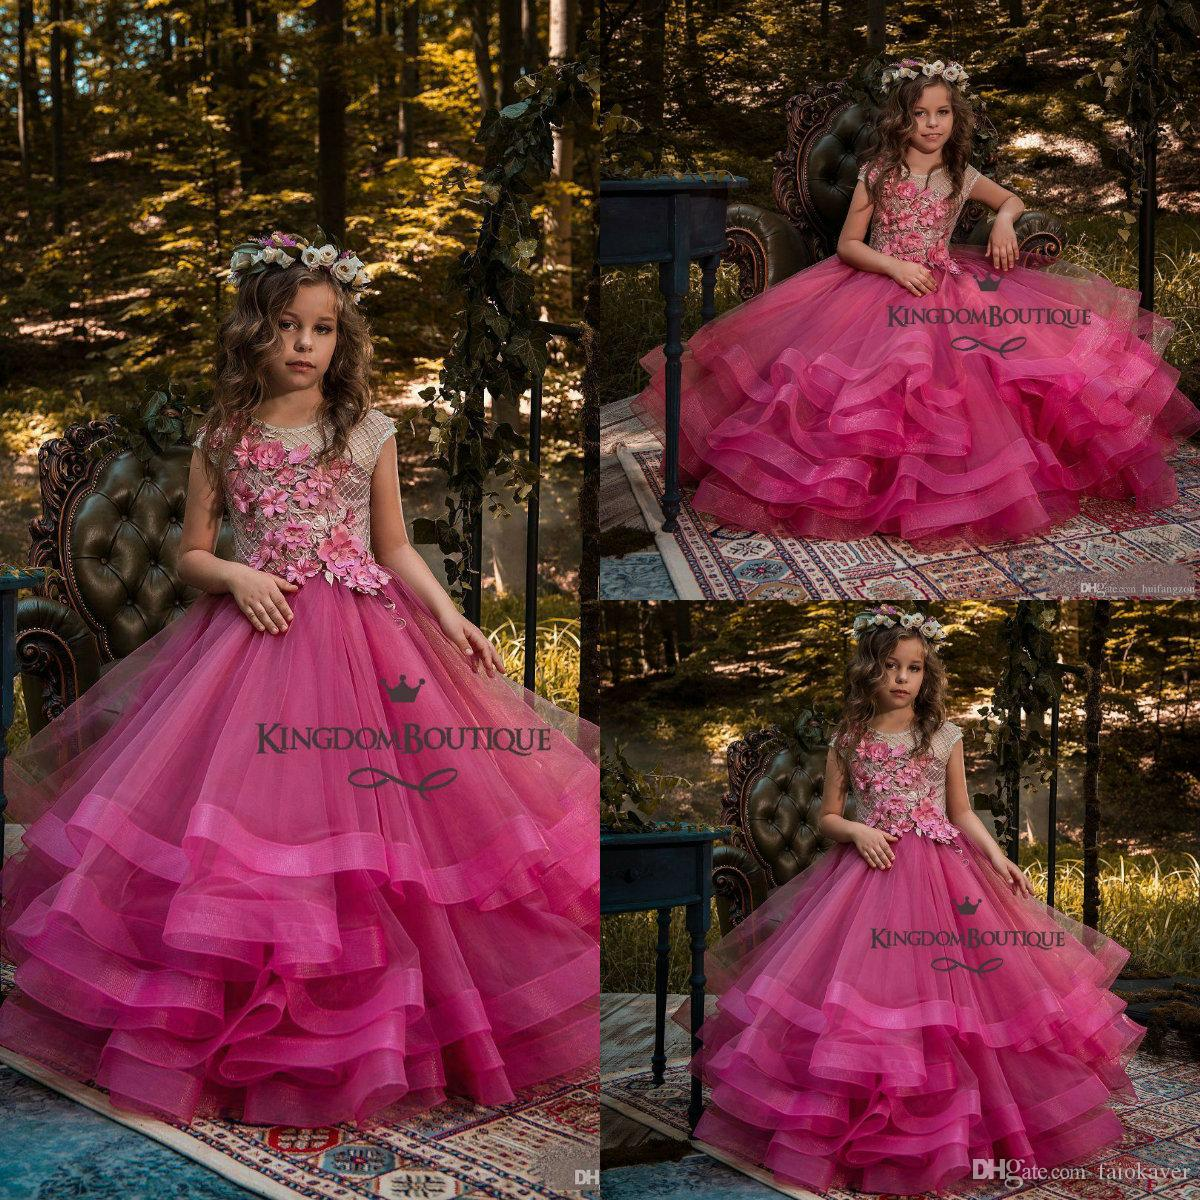 088b1e17859 2019 Fuchsia Flower Girl Dresses 3D Floral Appliques Glitter Girls Pageant  Gowns With Tiered Skirts Floor Length Kids Birthday Party Dress Flower Girl  ...